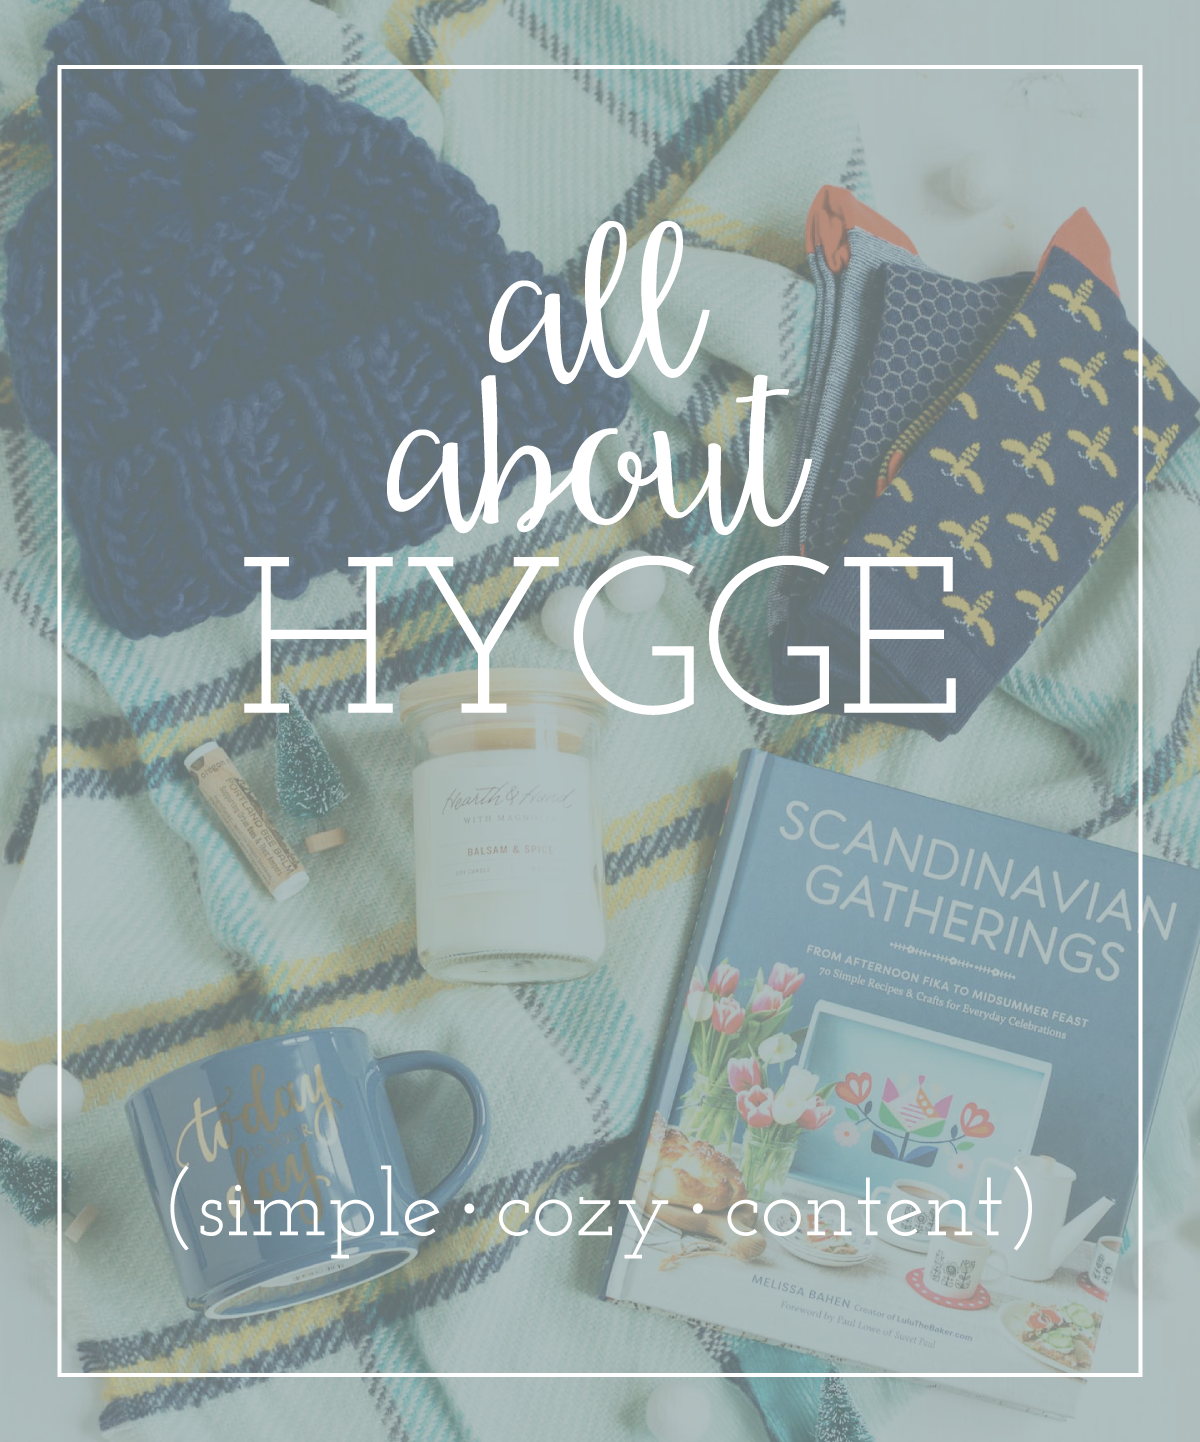 Have you heard about Hygge?? It's the hottest trend this winter, but what is it, and how do you even pronounce it?